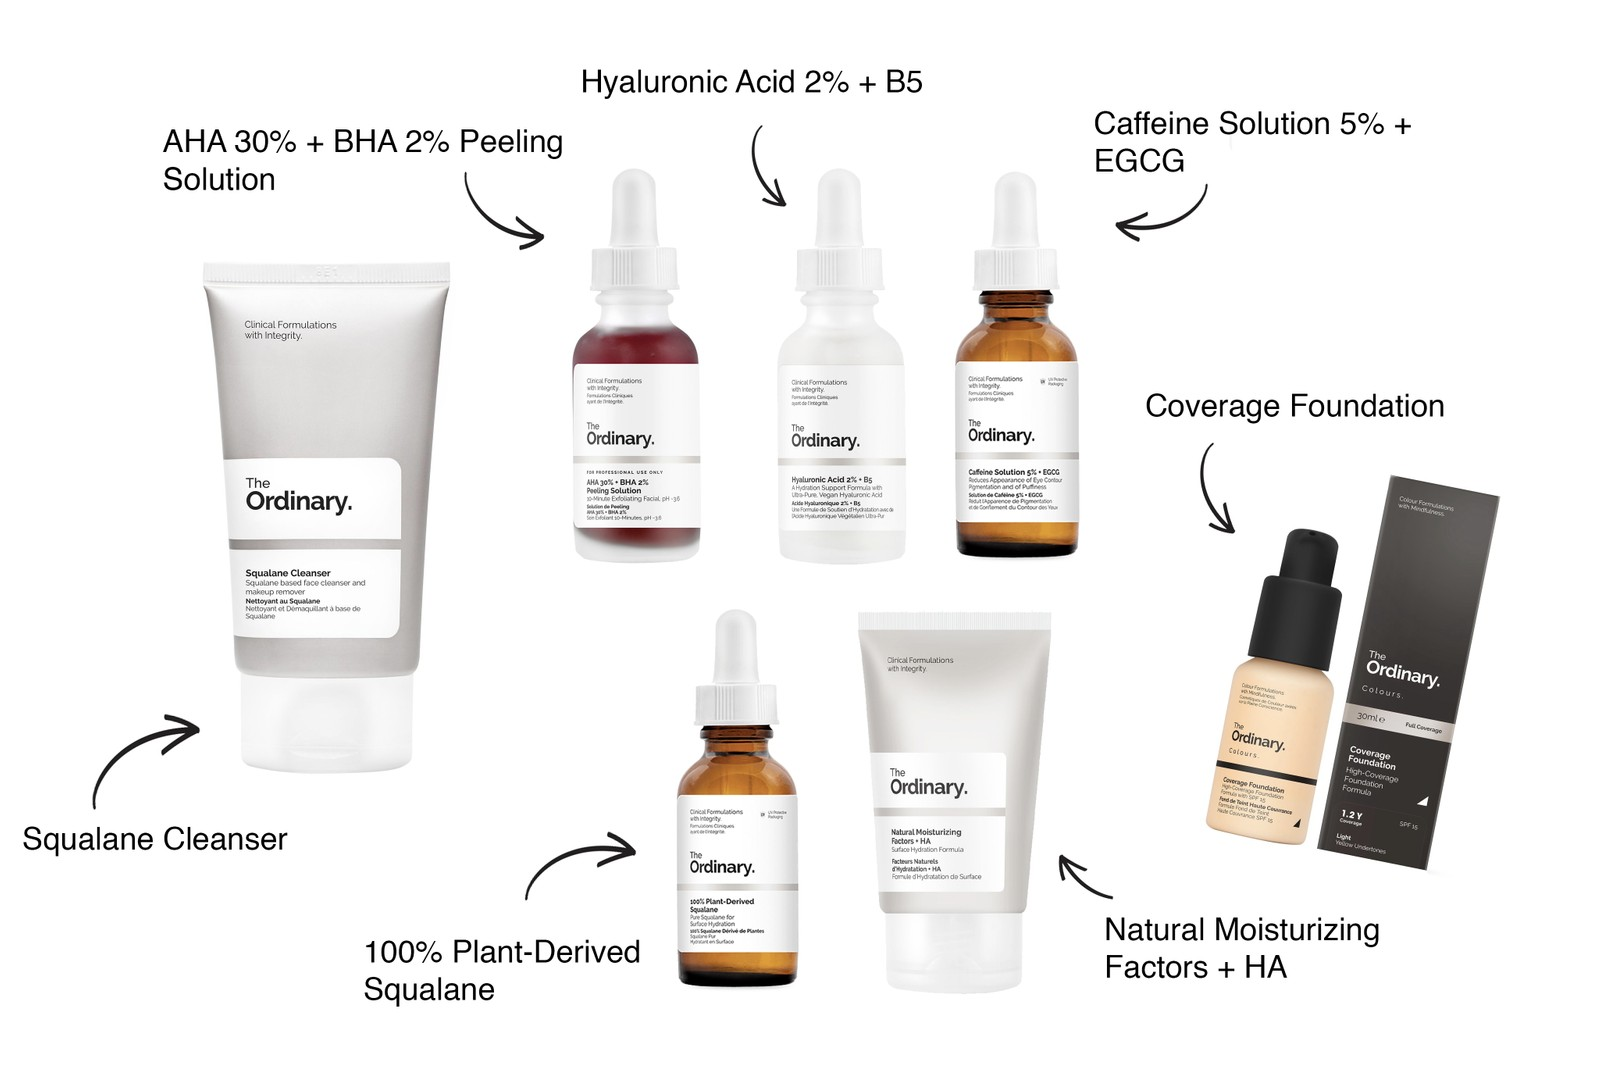 The Ordinary Skincare Routine Product Review Masque Serum Formula Oily Skin Complexion Does The Ordinary Work Products Peeling Solution Caffeine Drops Hyaluronic Acid Squalene Cleanser